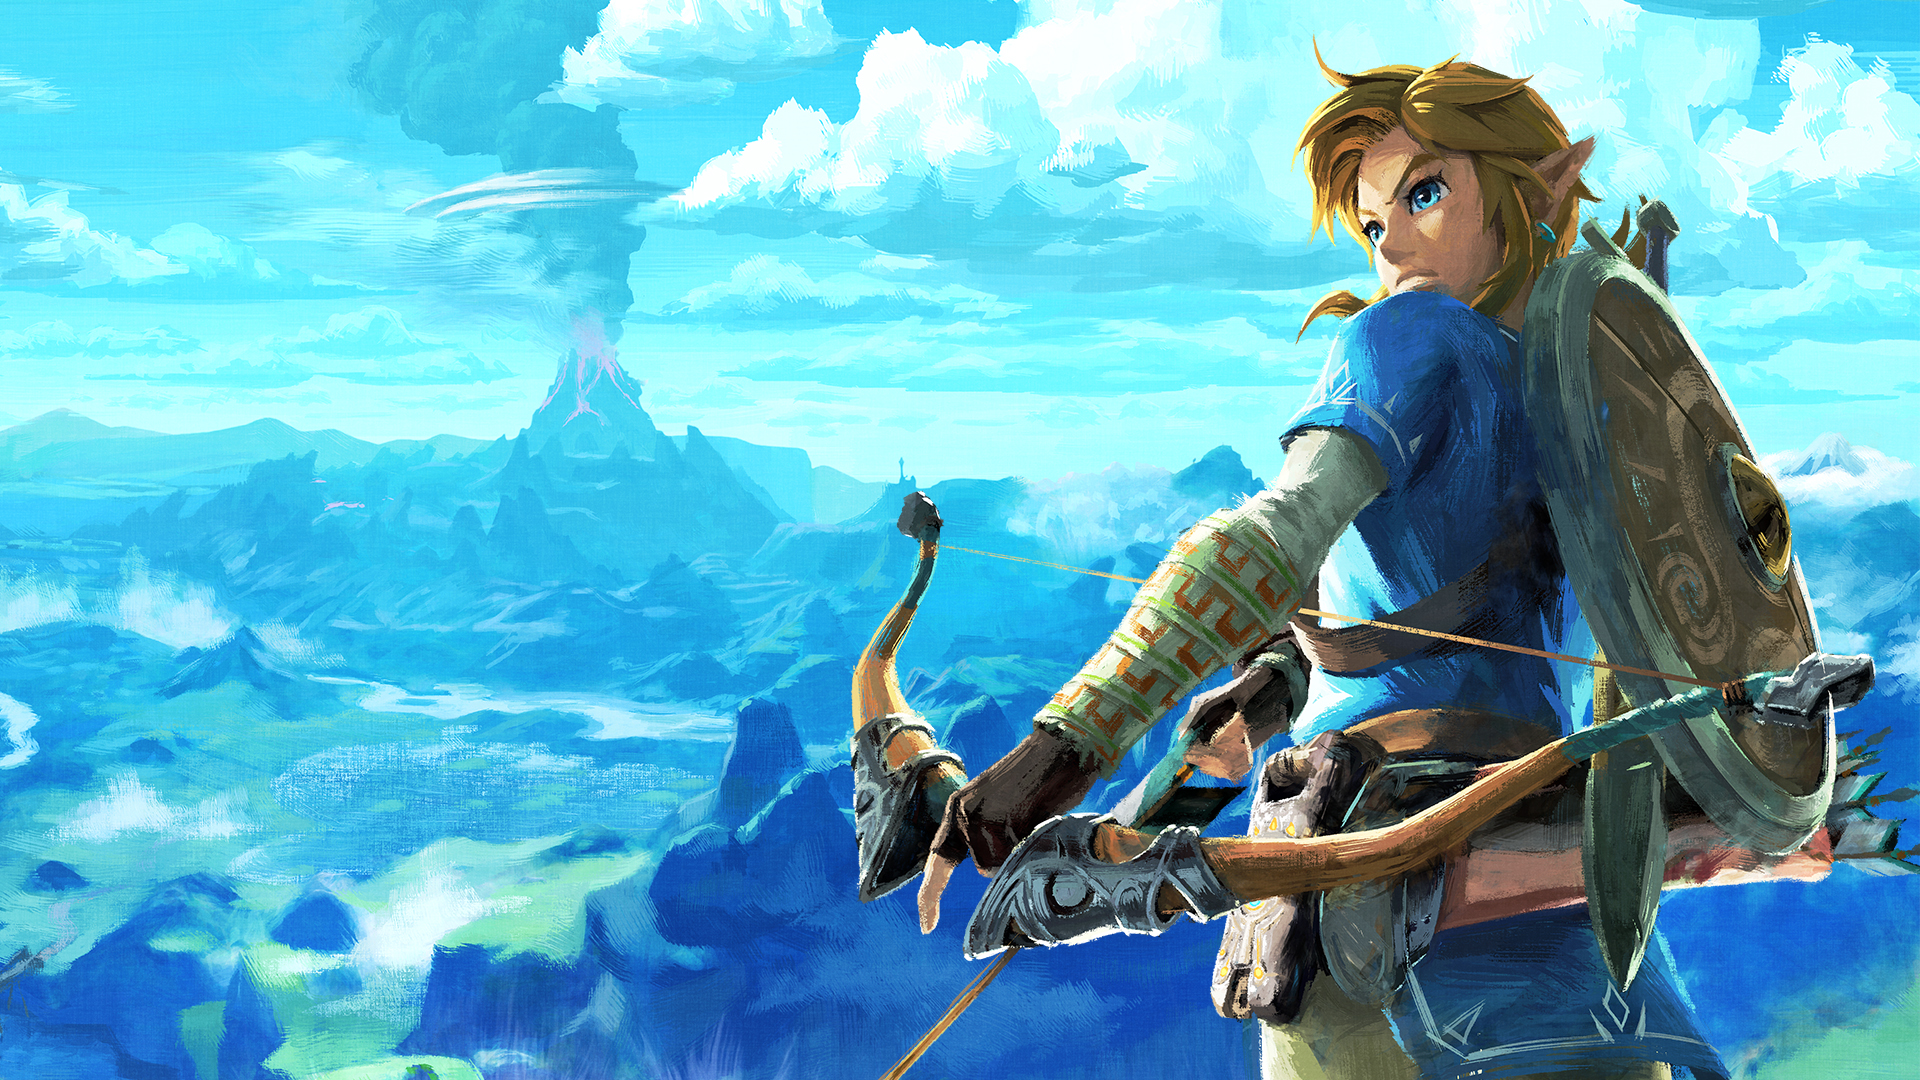 Image result for Breath of the wild fanart 1920x1080